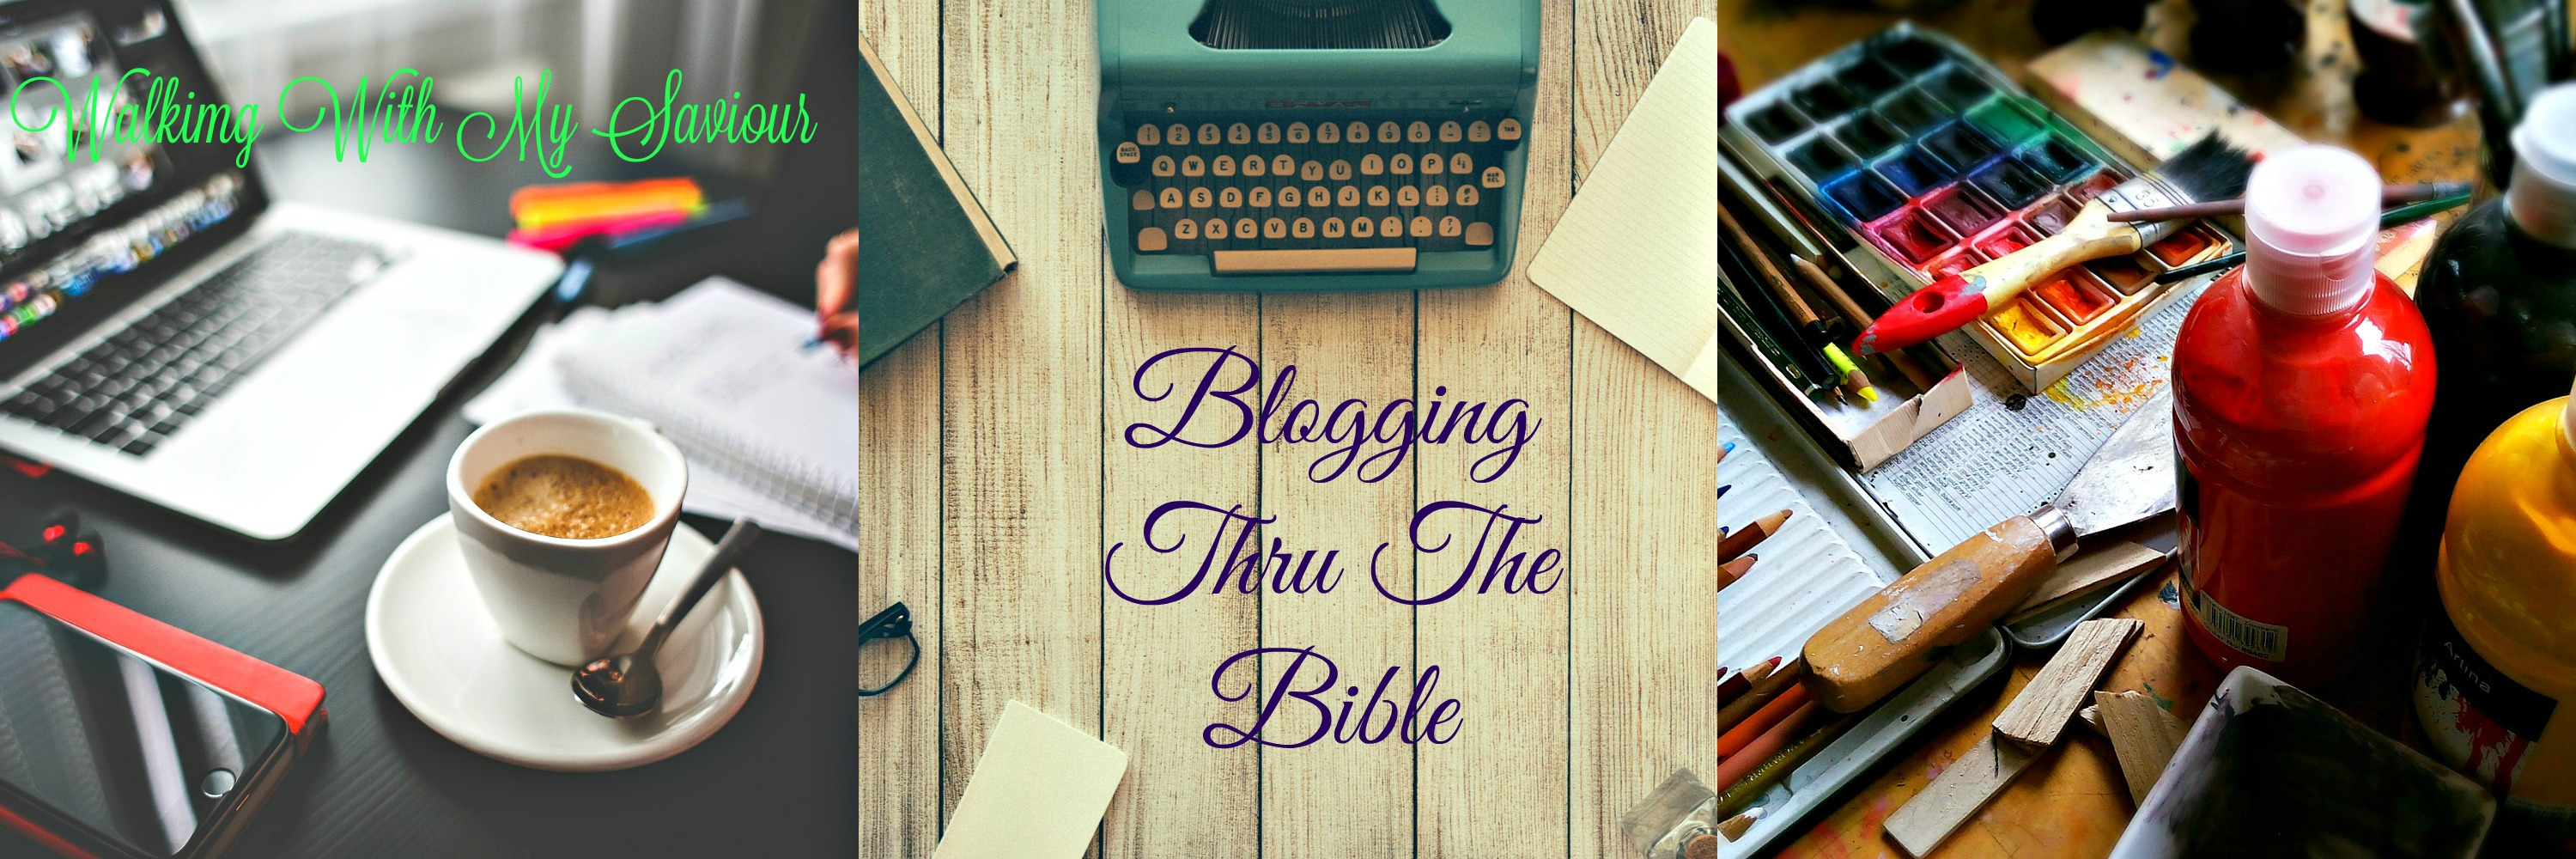 BLOGGING THRU THE BIBLE: Introducing GMG's Spring Bible Study!